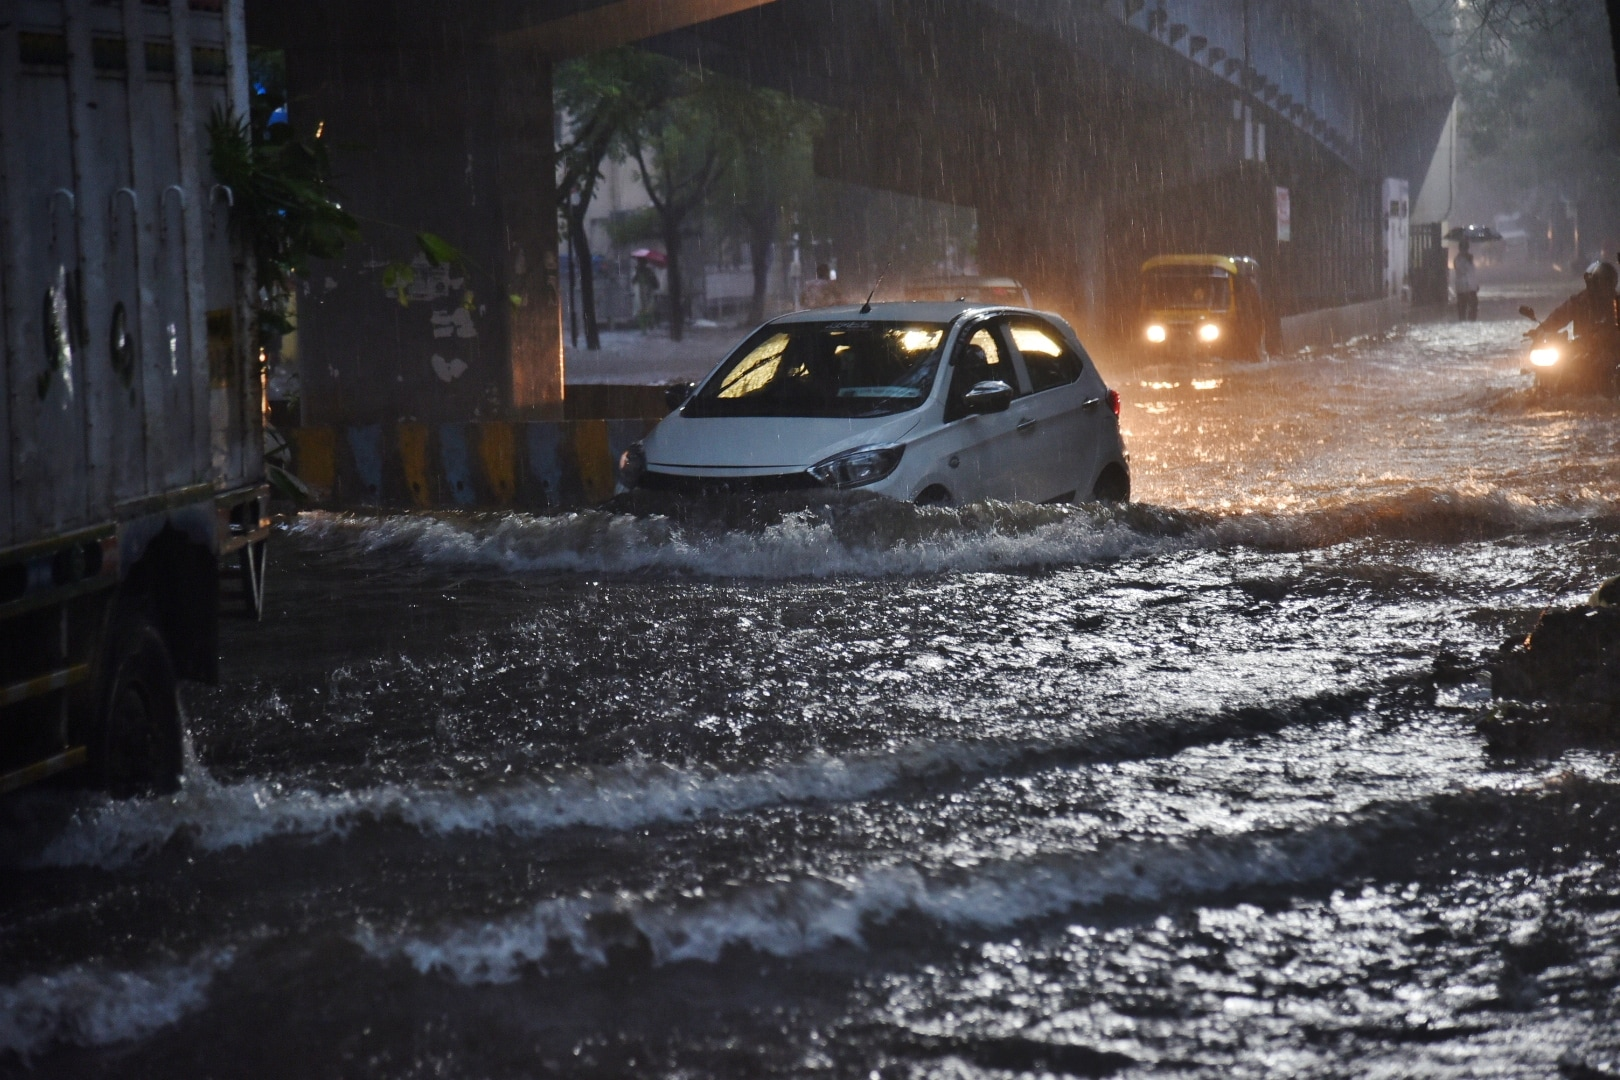 A car tries to don the cap of a boat as it attempts to negotiate a submerged road in Thane.